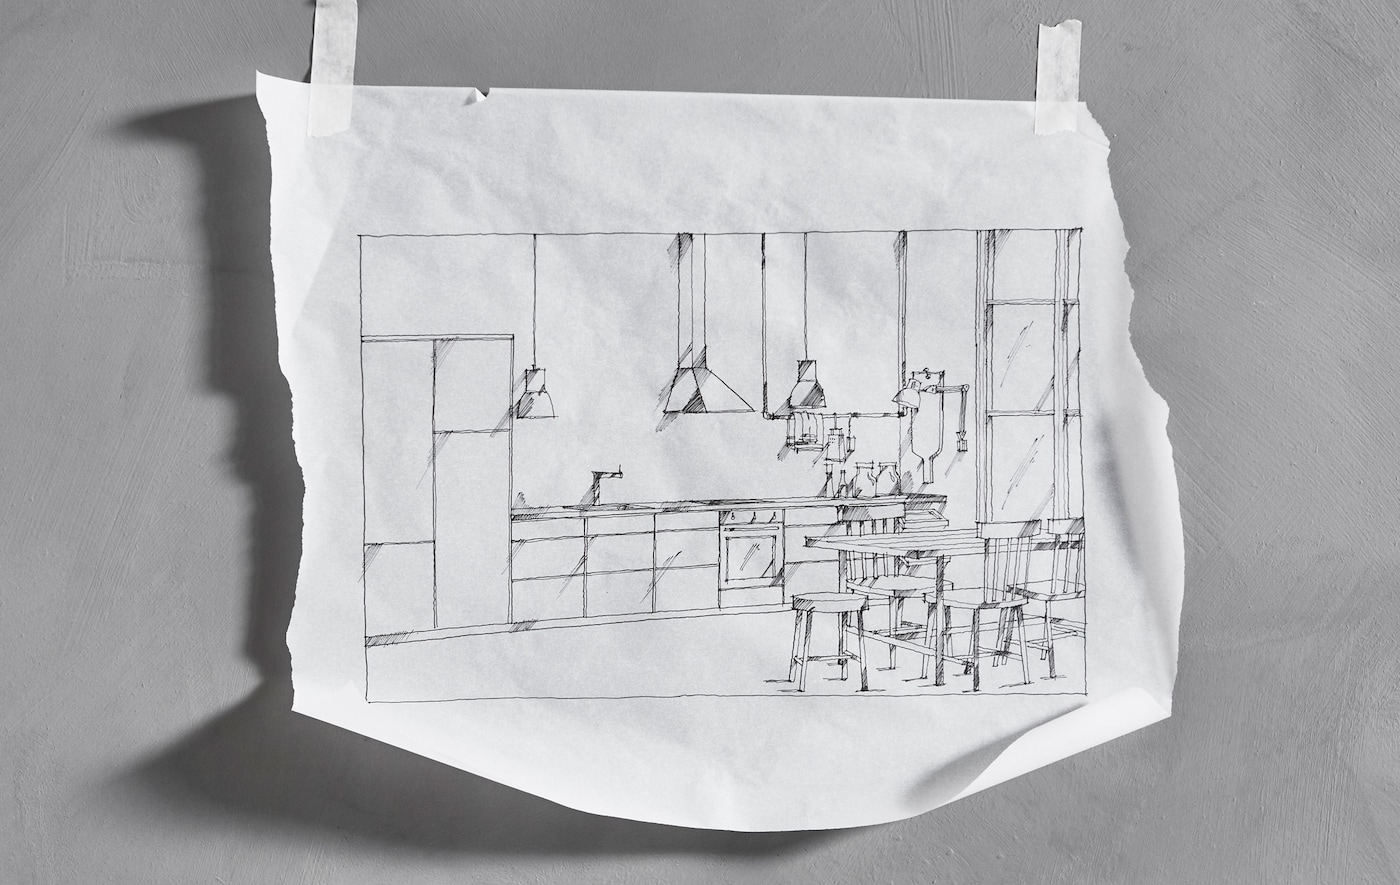 A hand-drawn sketch of a straight-line IKEA kitchen that's taped to a wall